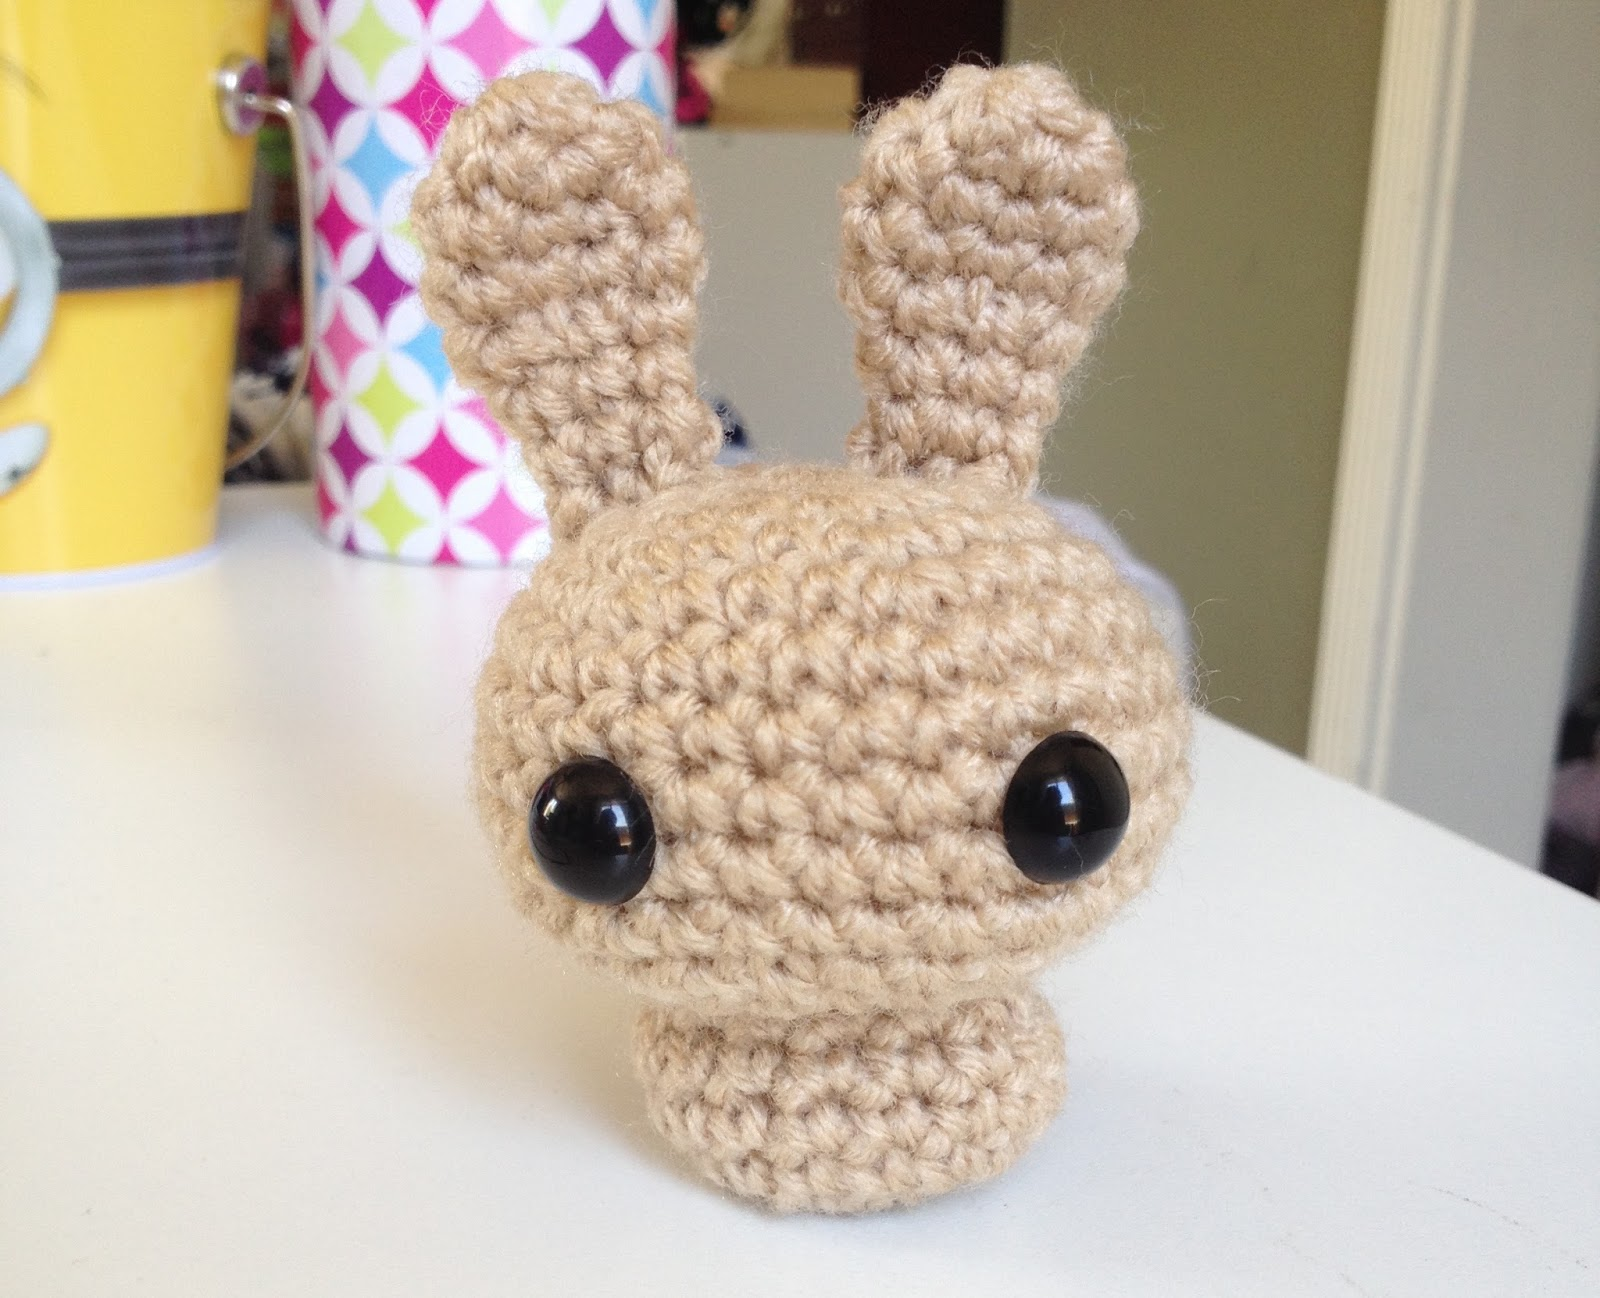 Nerdy and Crafty: Simple Bunny Crochet Pattern